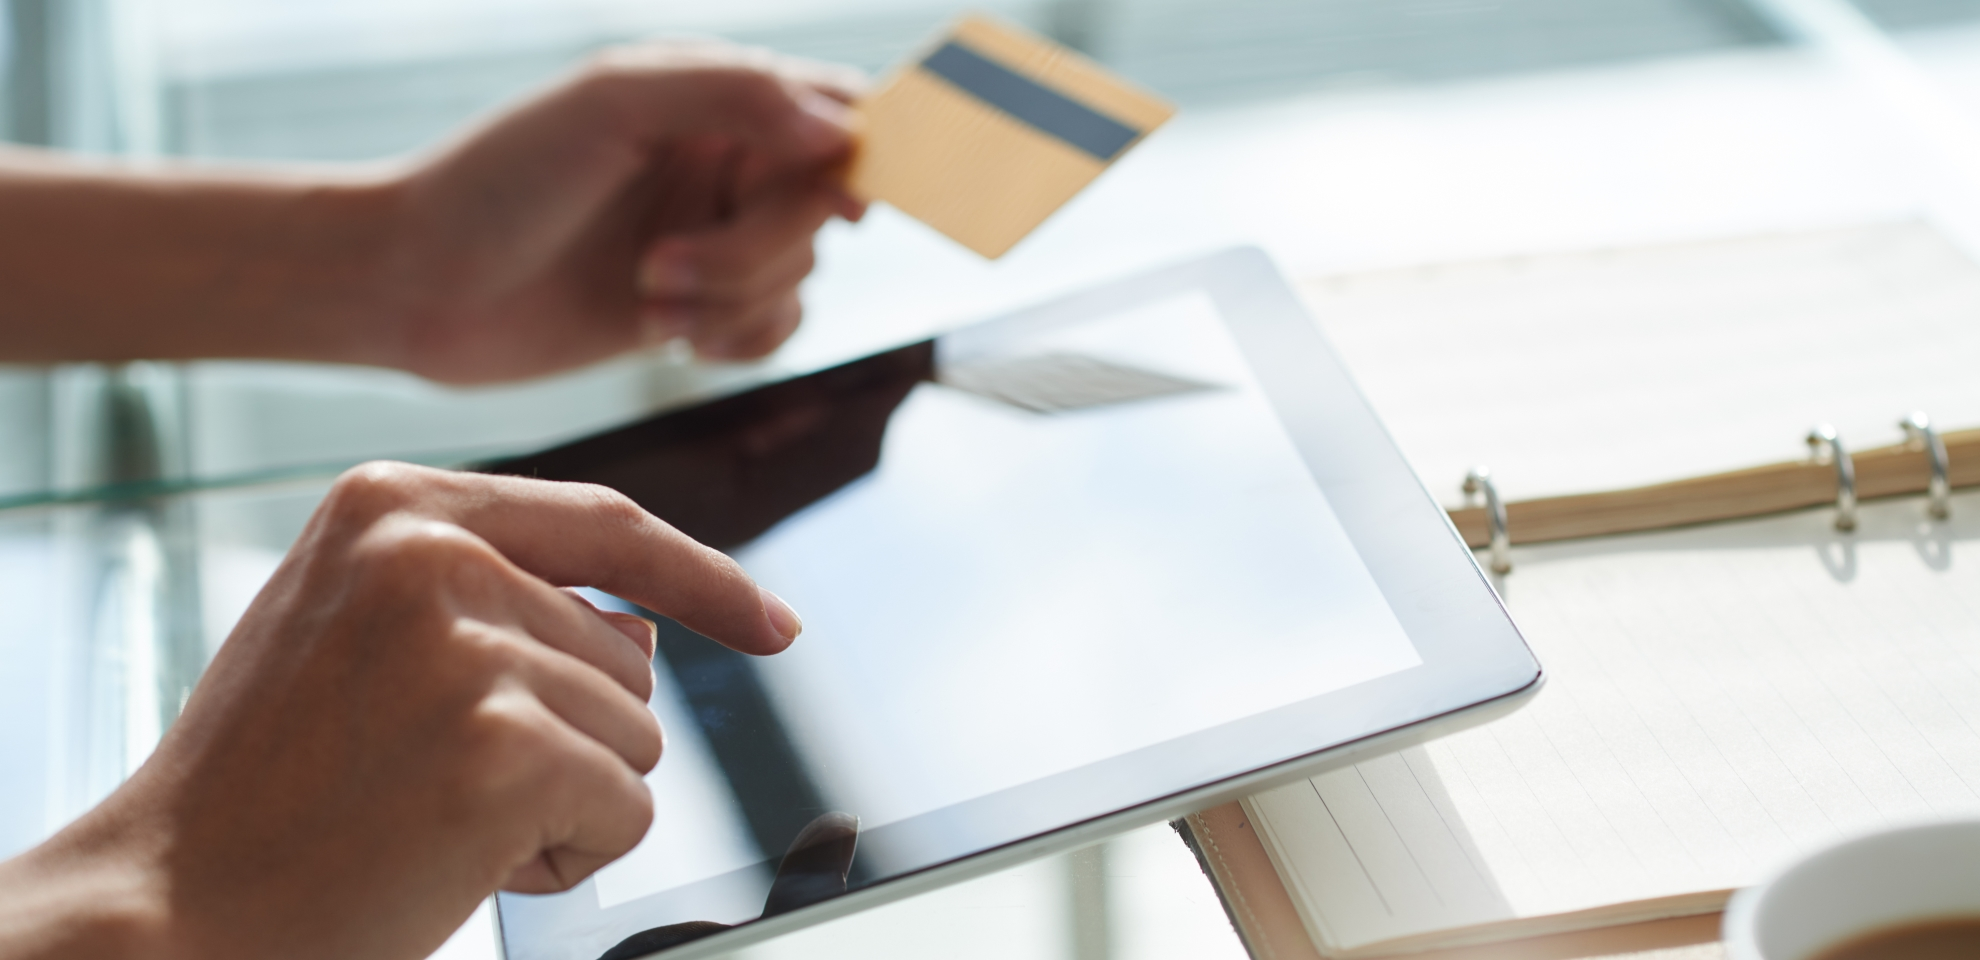 7 Factors to Consider When Choosing an Online Credit Card Processor